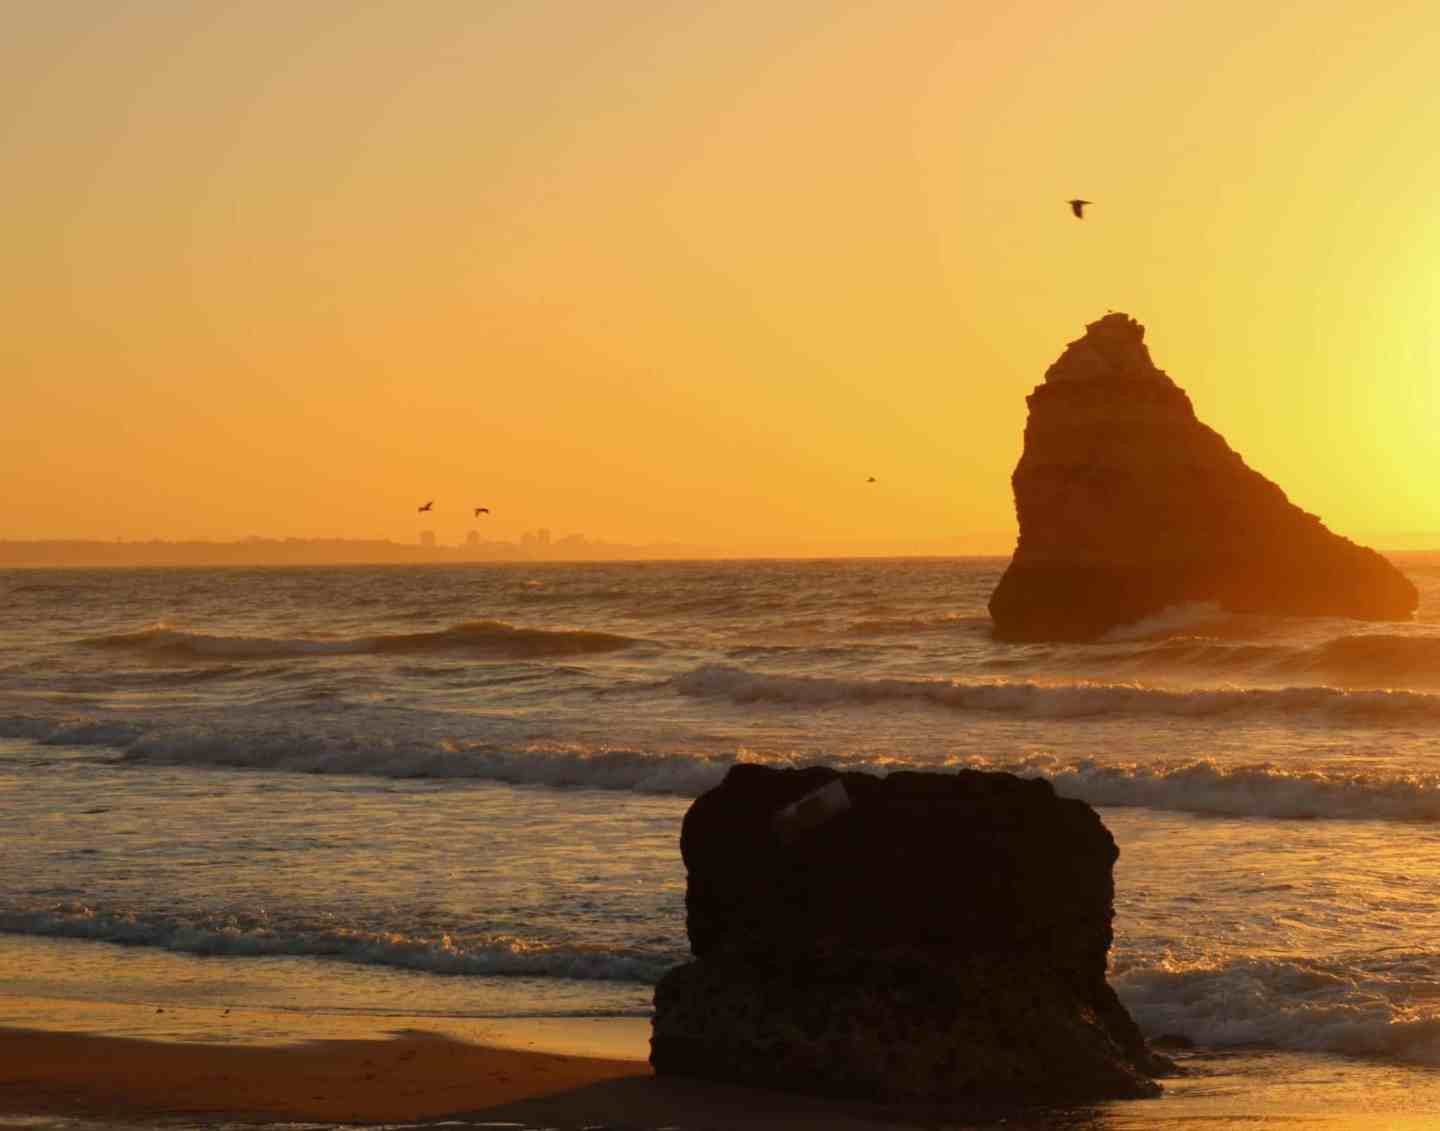 Sunrise at Algarve beach with rocks and a bird in the sky